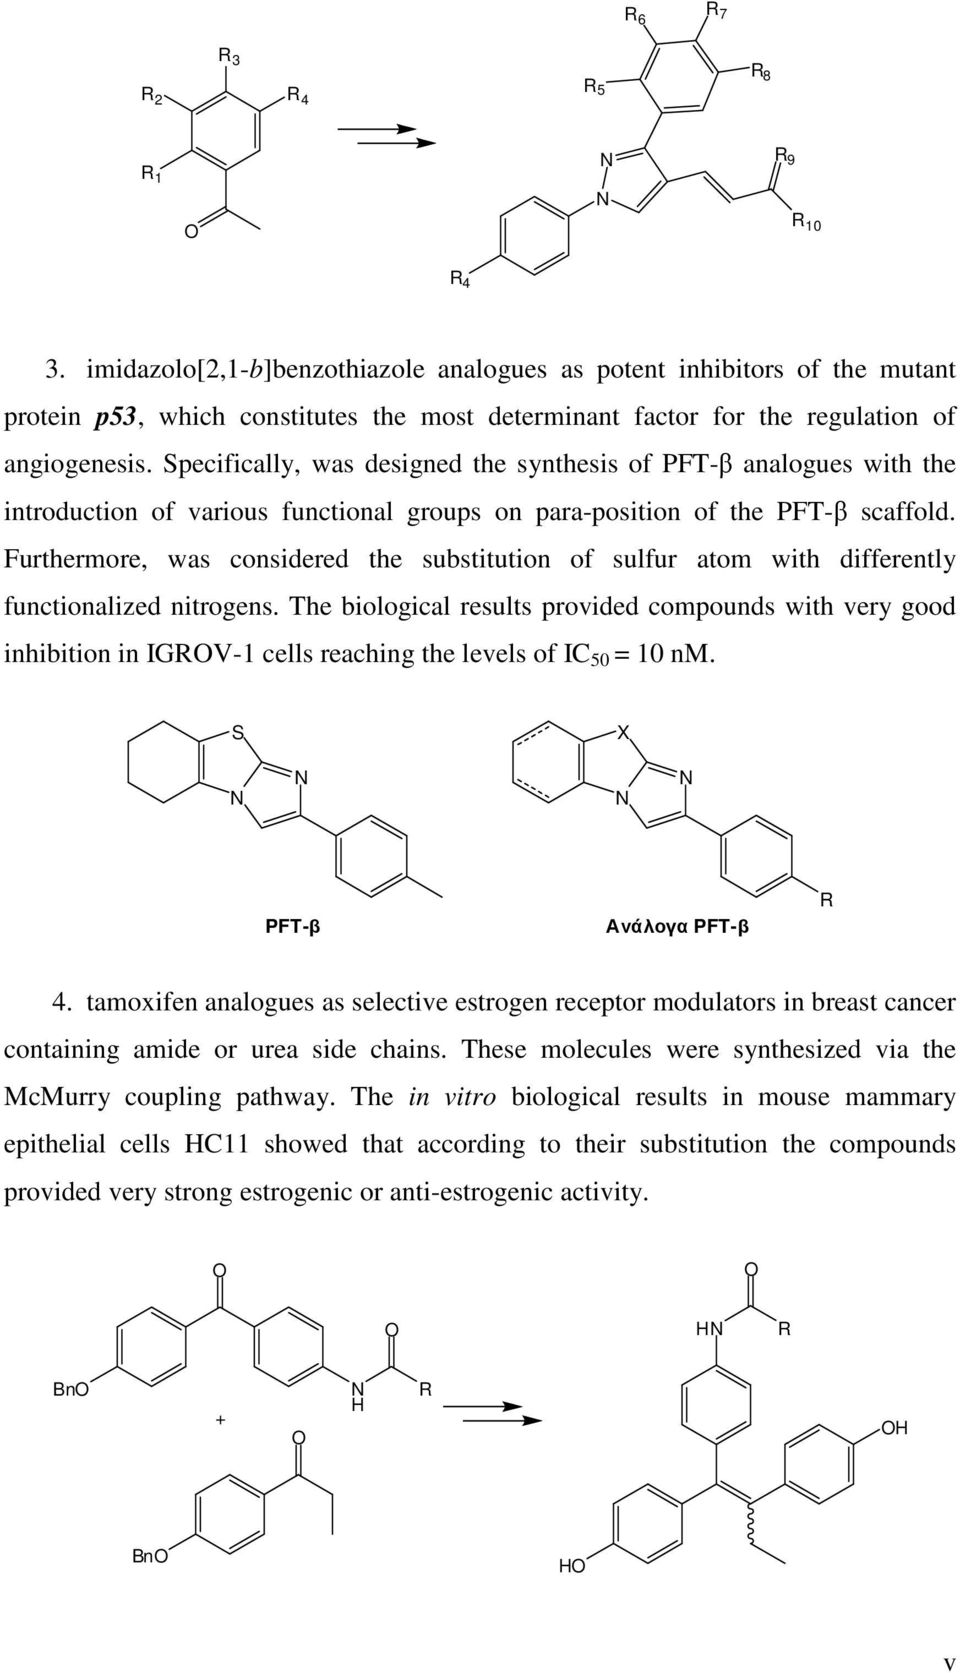 Specifically, was designed the synthesis of PFT-β analogues with the introduction of various functional groups on para-position of the PFT-β scaffold.